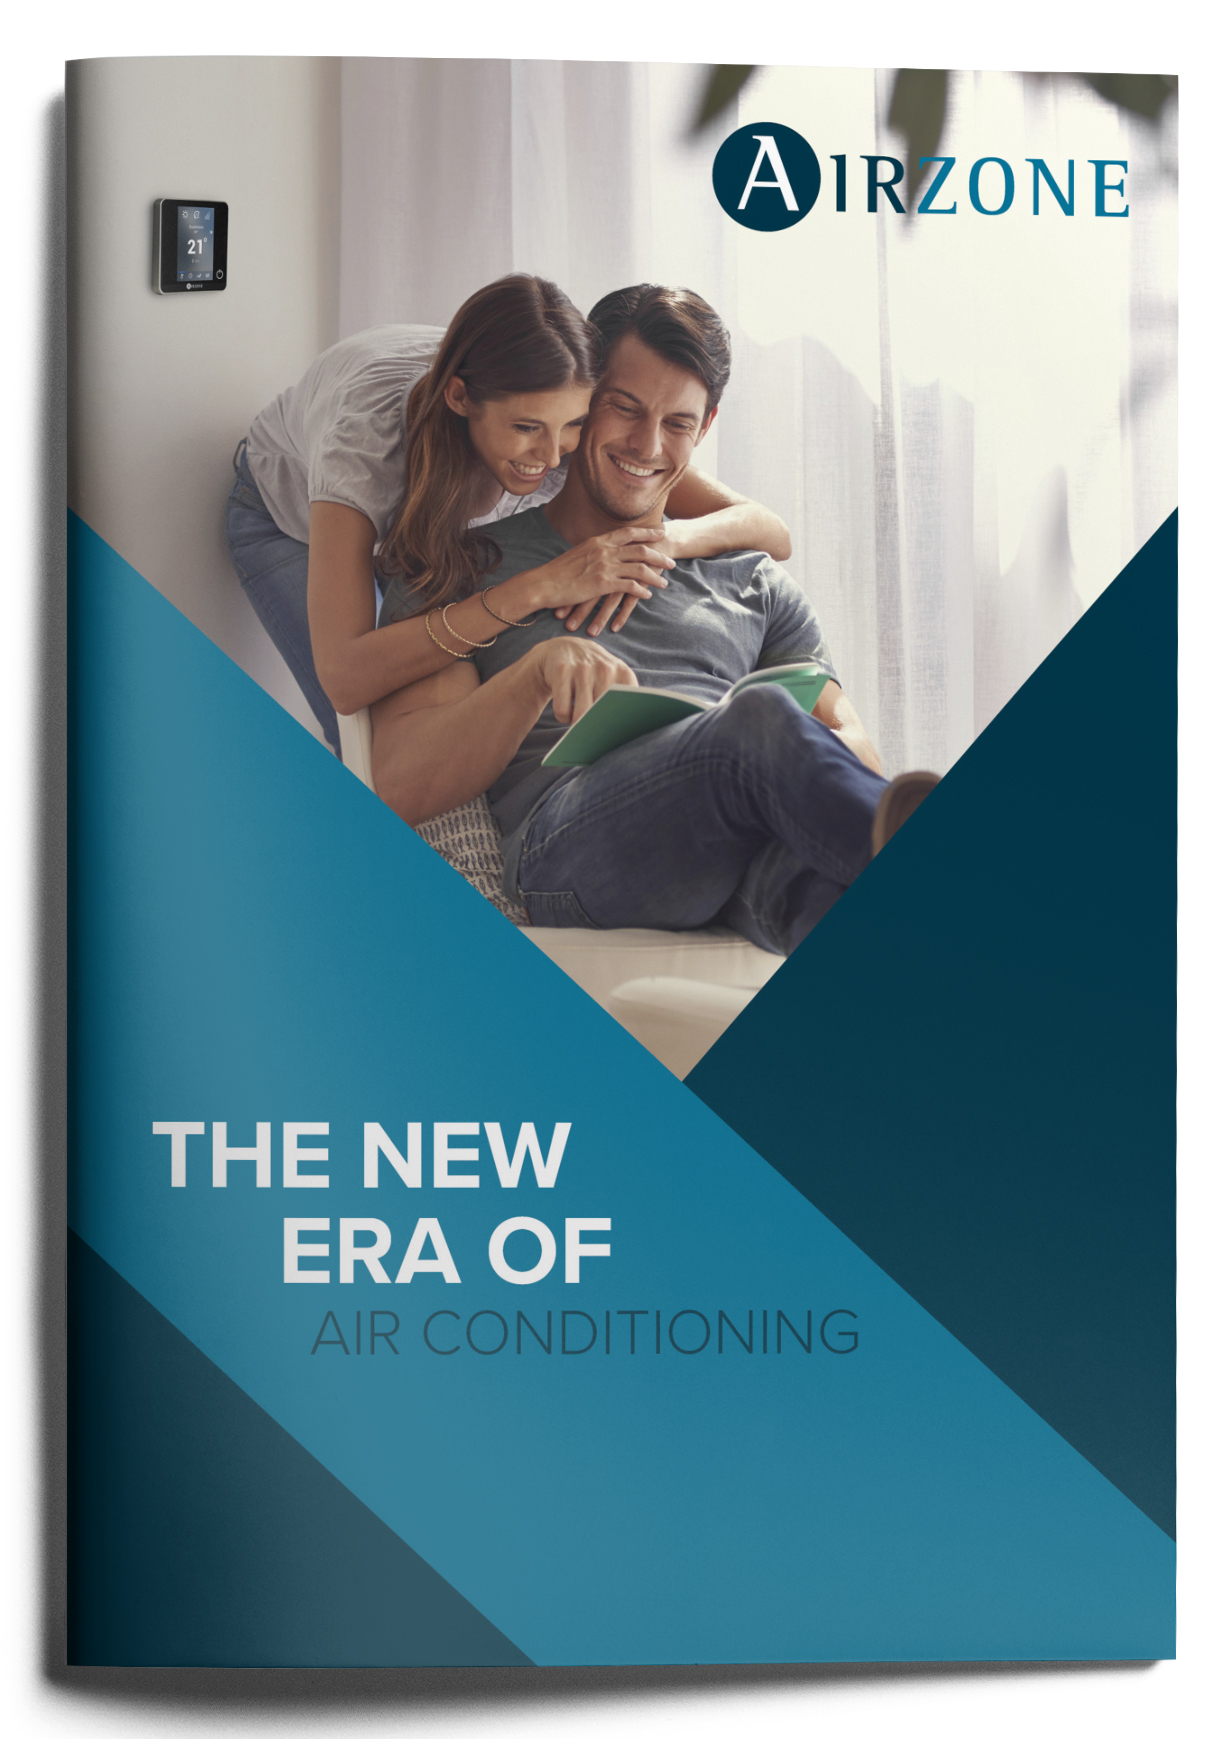 The new era of air conditioning